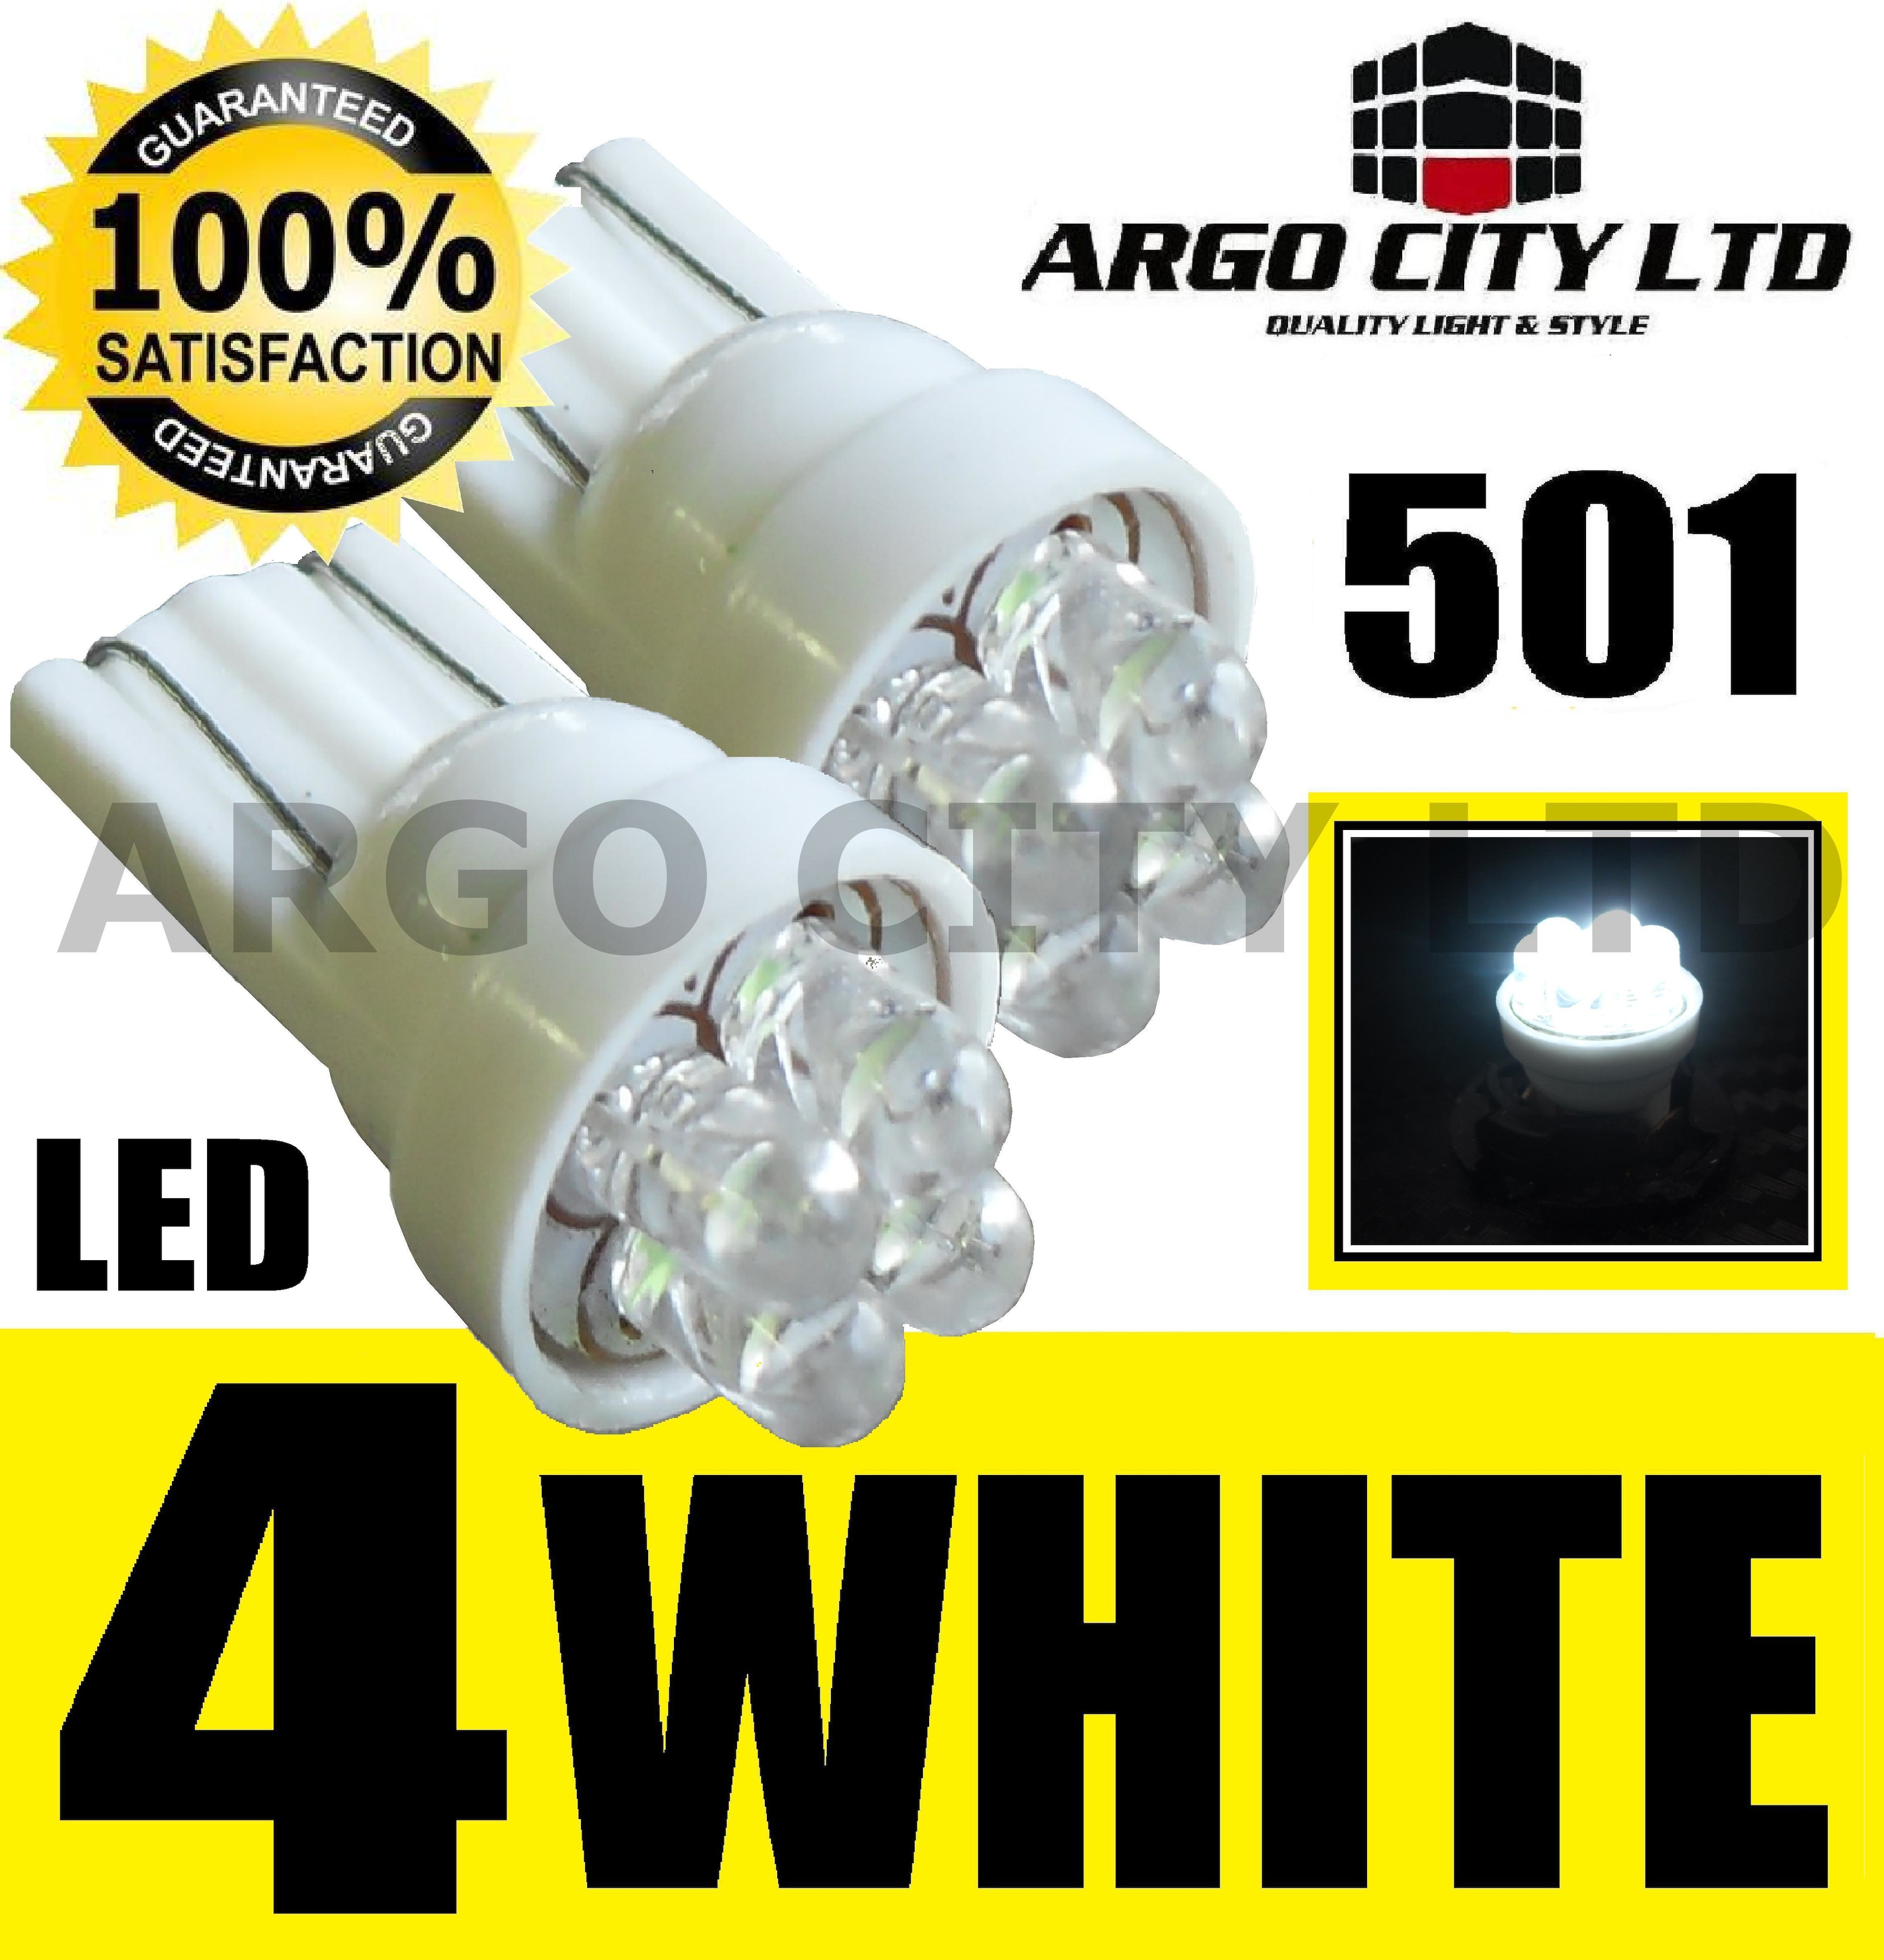 4 LED XENON WHITE QUAD 501 T10 W5W SIDELIGHT BULBS SUZUKI SWIFT